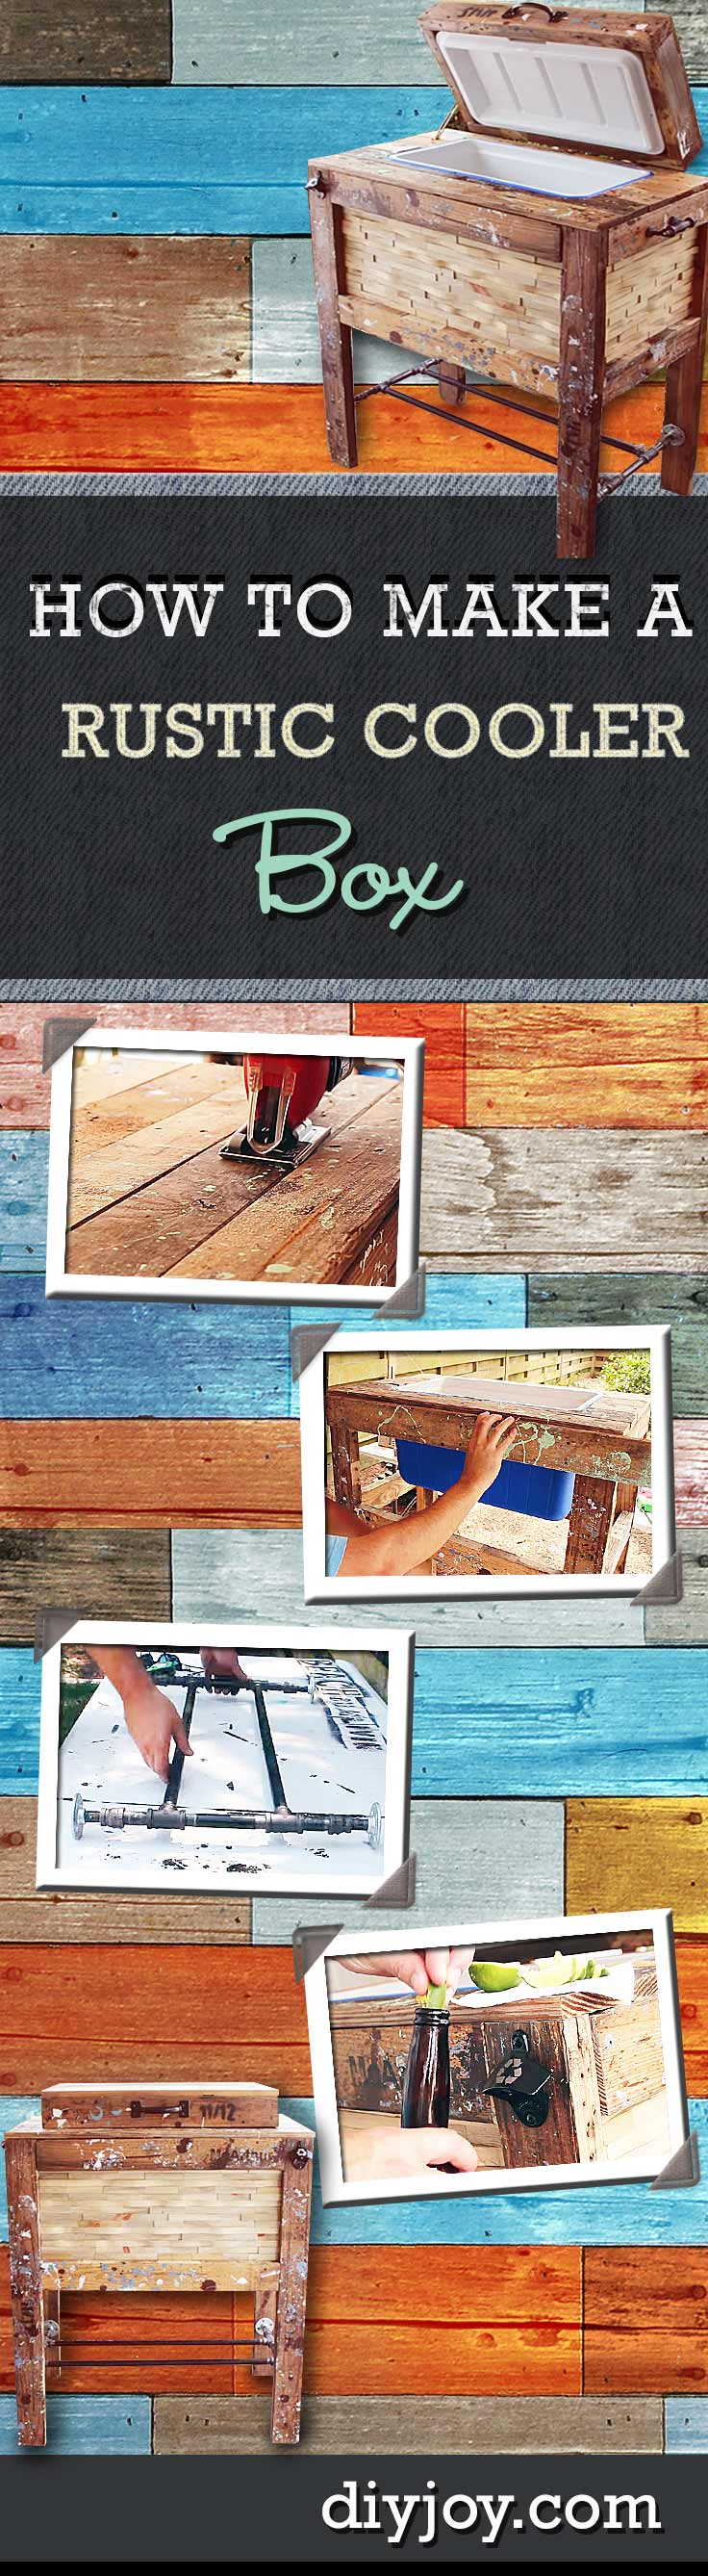 DIY Pallet Furniture Ideas - Rustic Cooler Box - Best Do It Yourself Projects Made With Wooden Pallets - Indoor and Outdoor, Bedroom, Living Room, Patio. Coffee Table, Couch, Dining Tables, Shelves, Racks and Benches